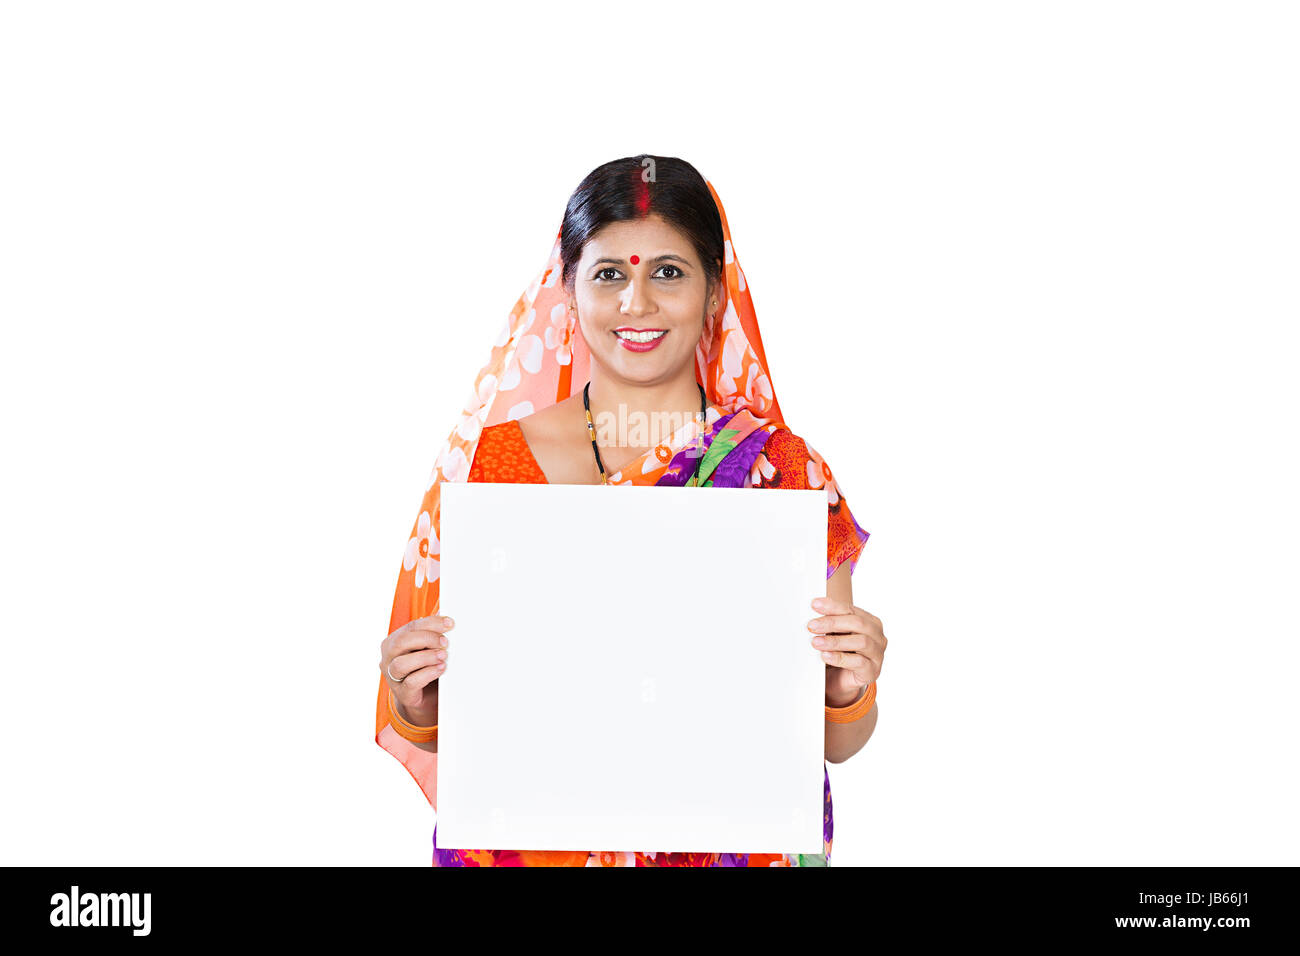 Smiling 1 Indian Rural Woman Showing White Board In Studio shot on White Background - Stock Image